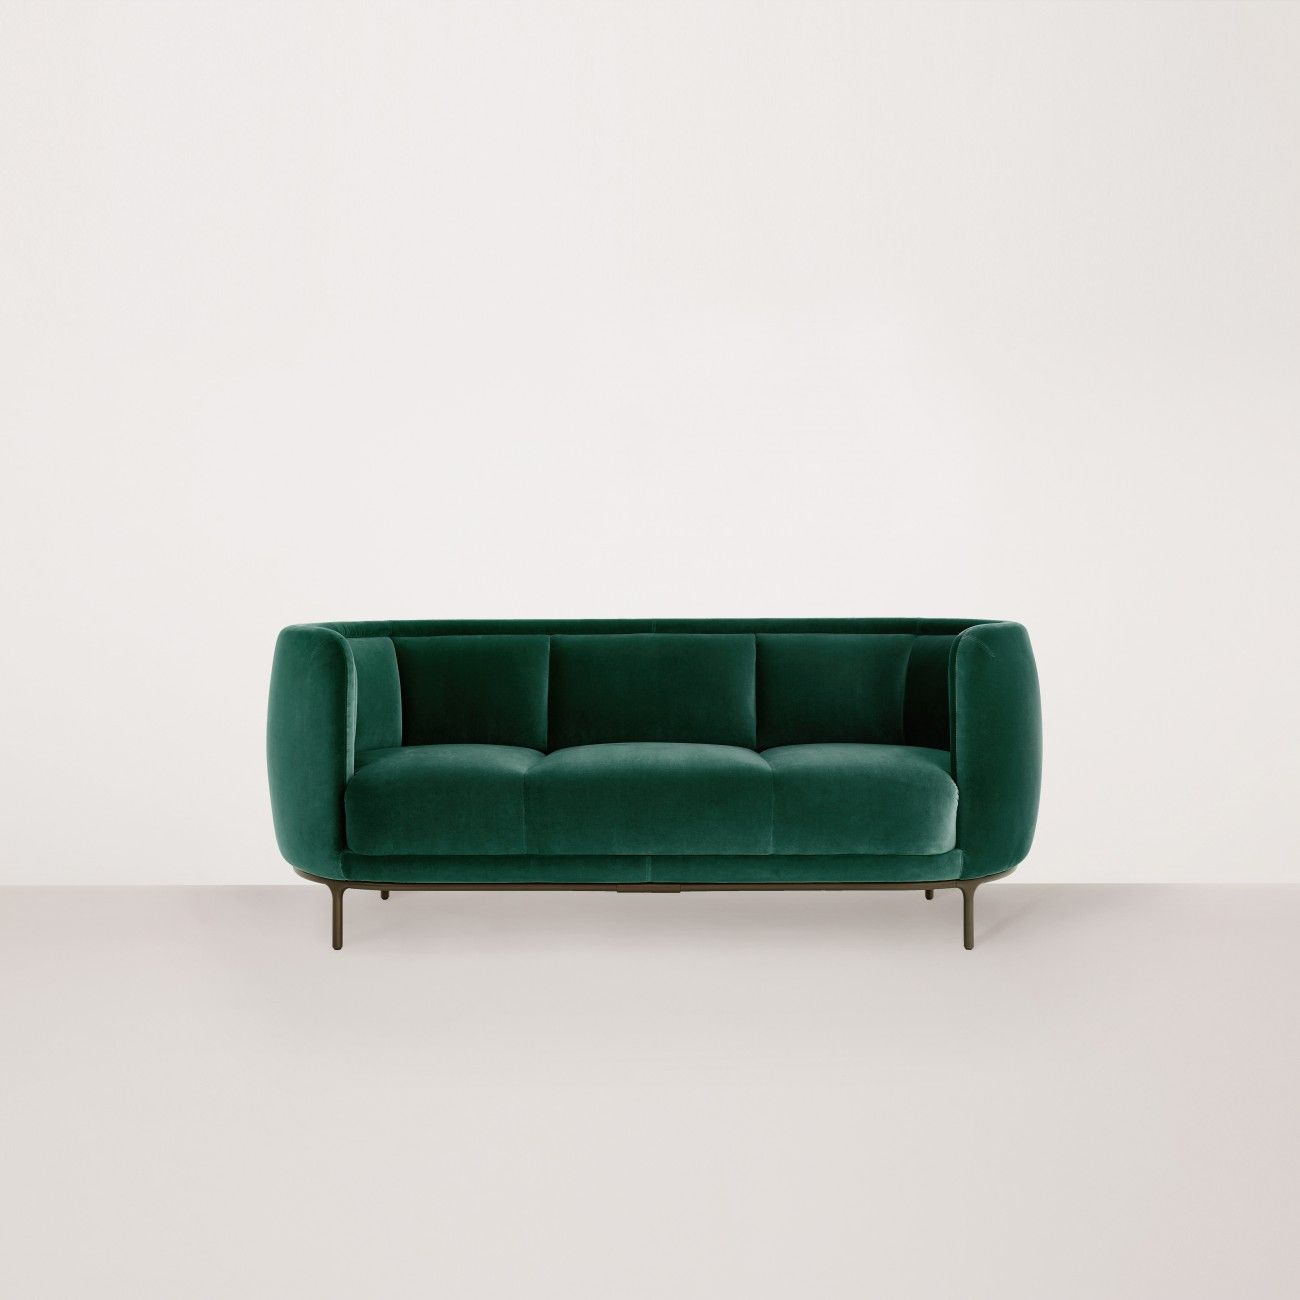 Vuelta sofa sofas seating catalogue sofa pinterest vuelta sofa sofas seating catalogue parisarafo Choice Image